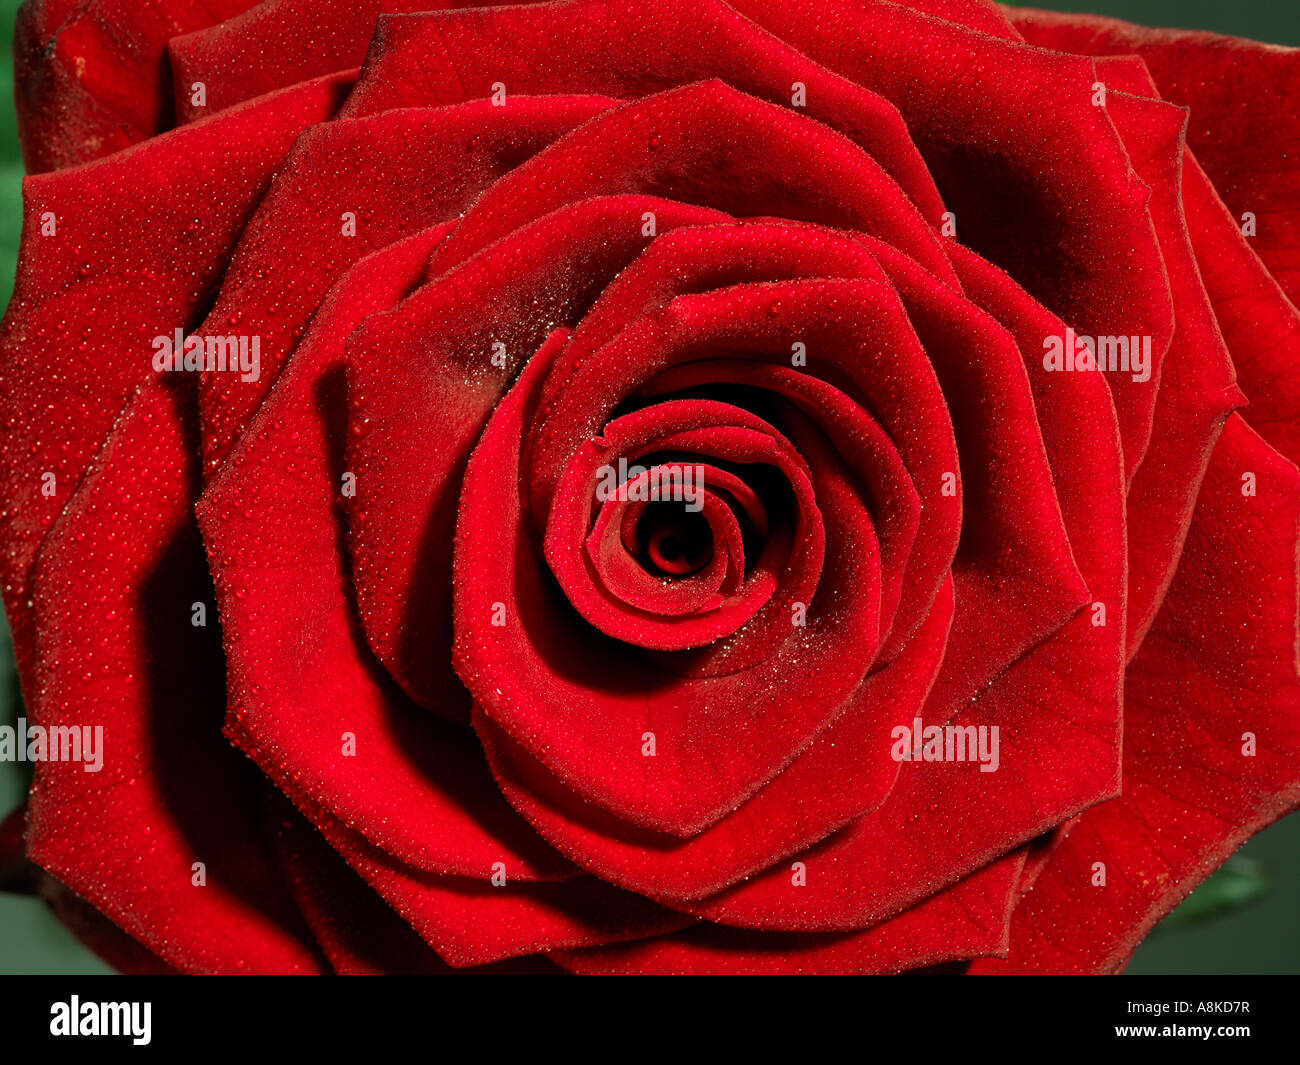 A red rose with droplets of dew close up - Stock Image